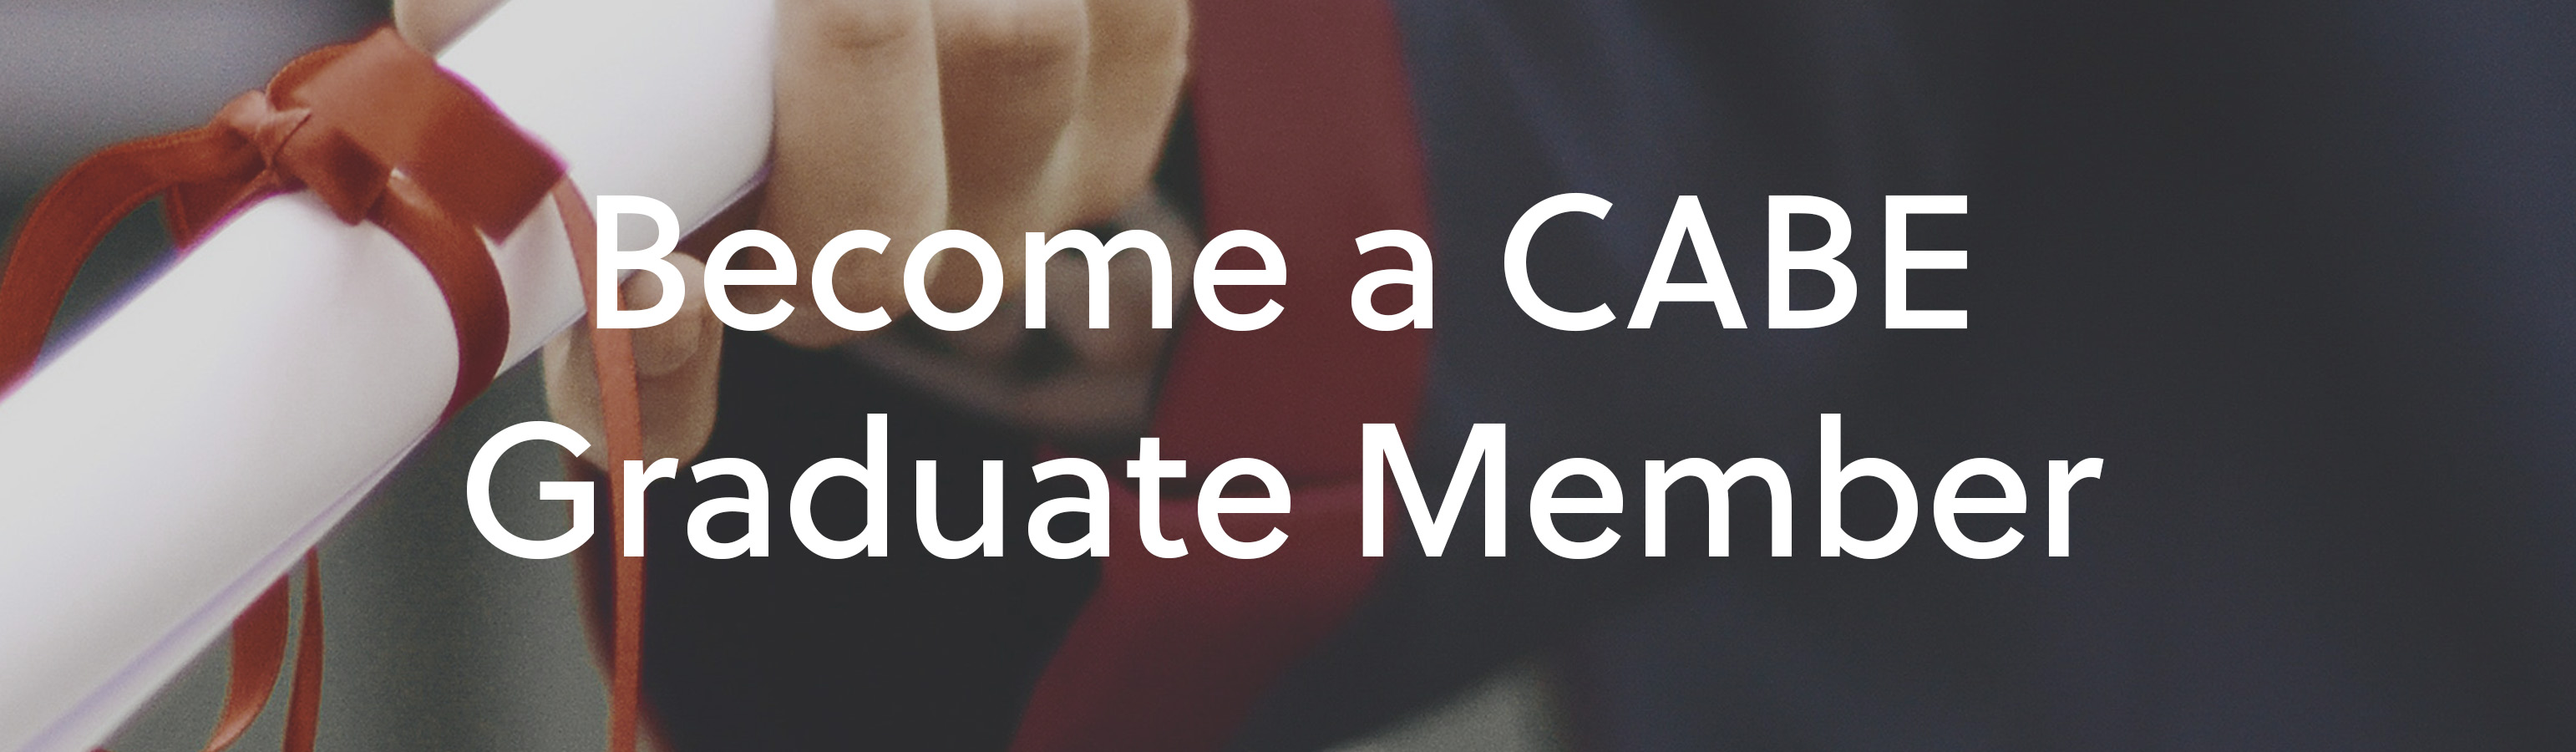 Join as a CABE Graduate Member